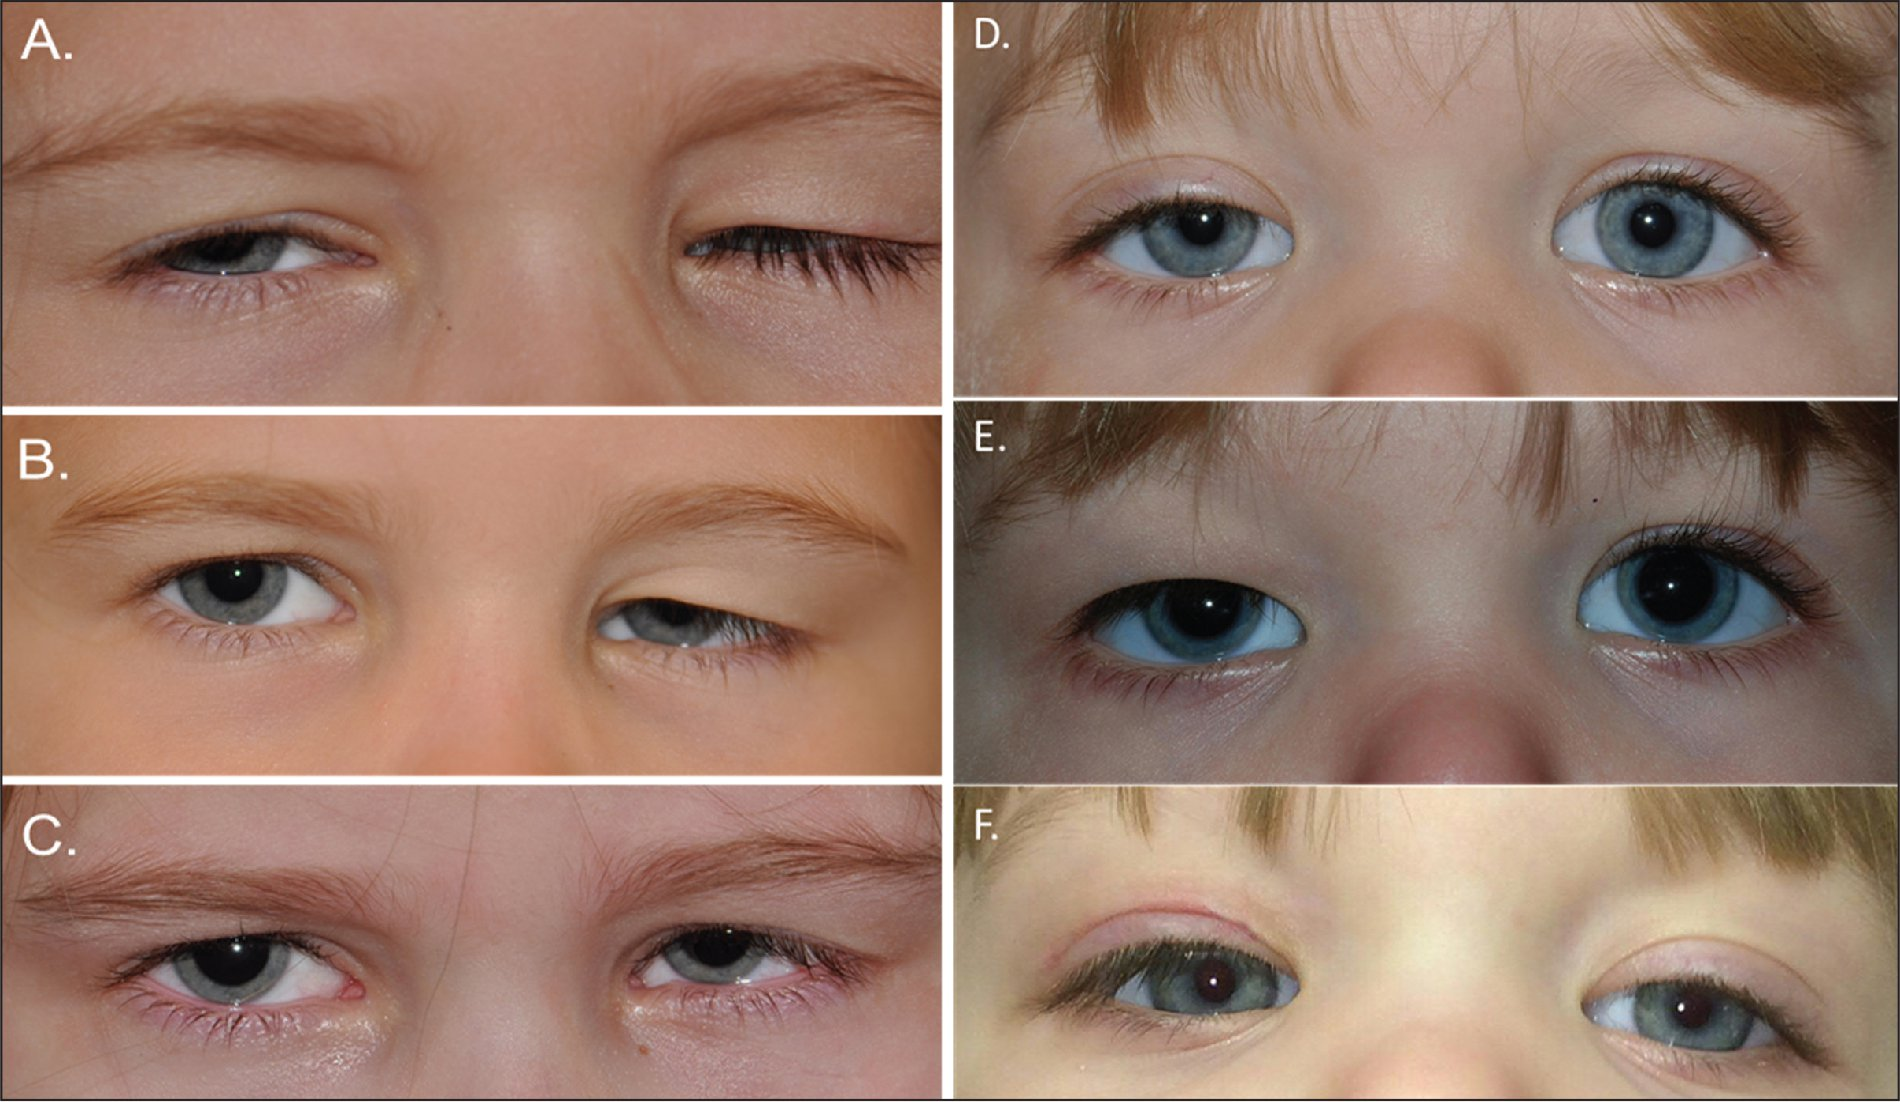 Preoperative photograph of patient 2 (left eye) showing (A) congenital ptosis, (B) post-levator resection in the left eye (showing excess tissue overhanging the upper eyelid), and (C) post-sulcoplasty with improved sulcus and eyelid crease. Preoperative photograph of patient 3 (right eye) showing (D) right congenital ptosis, (E) post-levator resection in the right eye with excess tissue overhanging the upper eyelid, and (F) post-sulcoplasty with improved sulcus and eyelid crease.